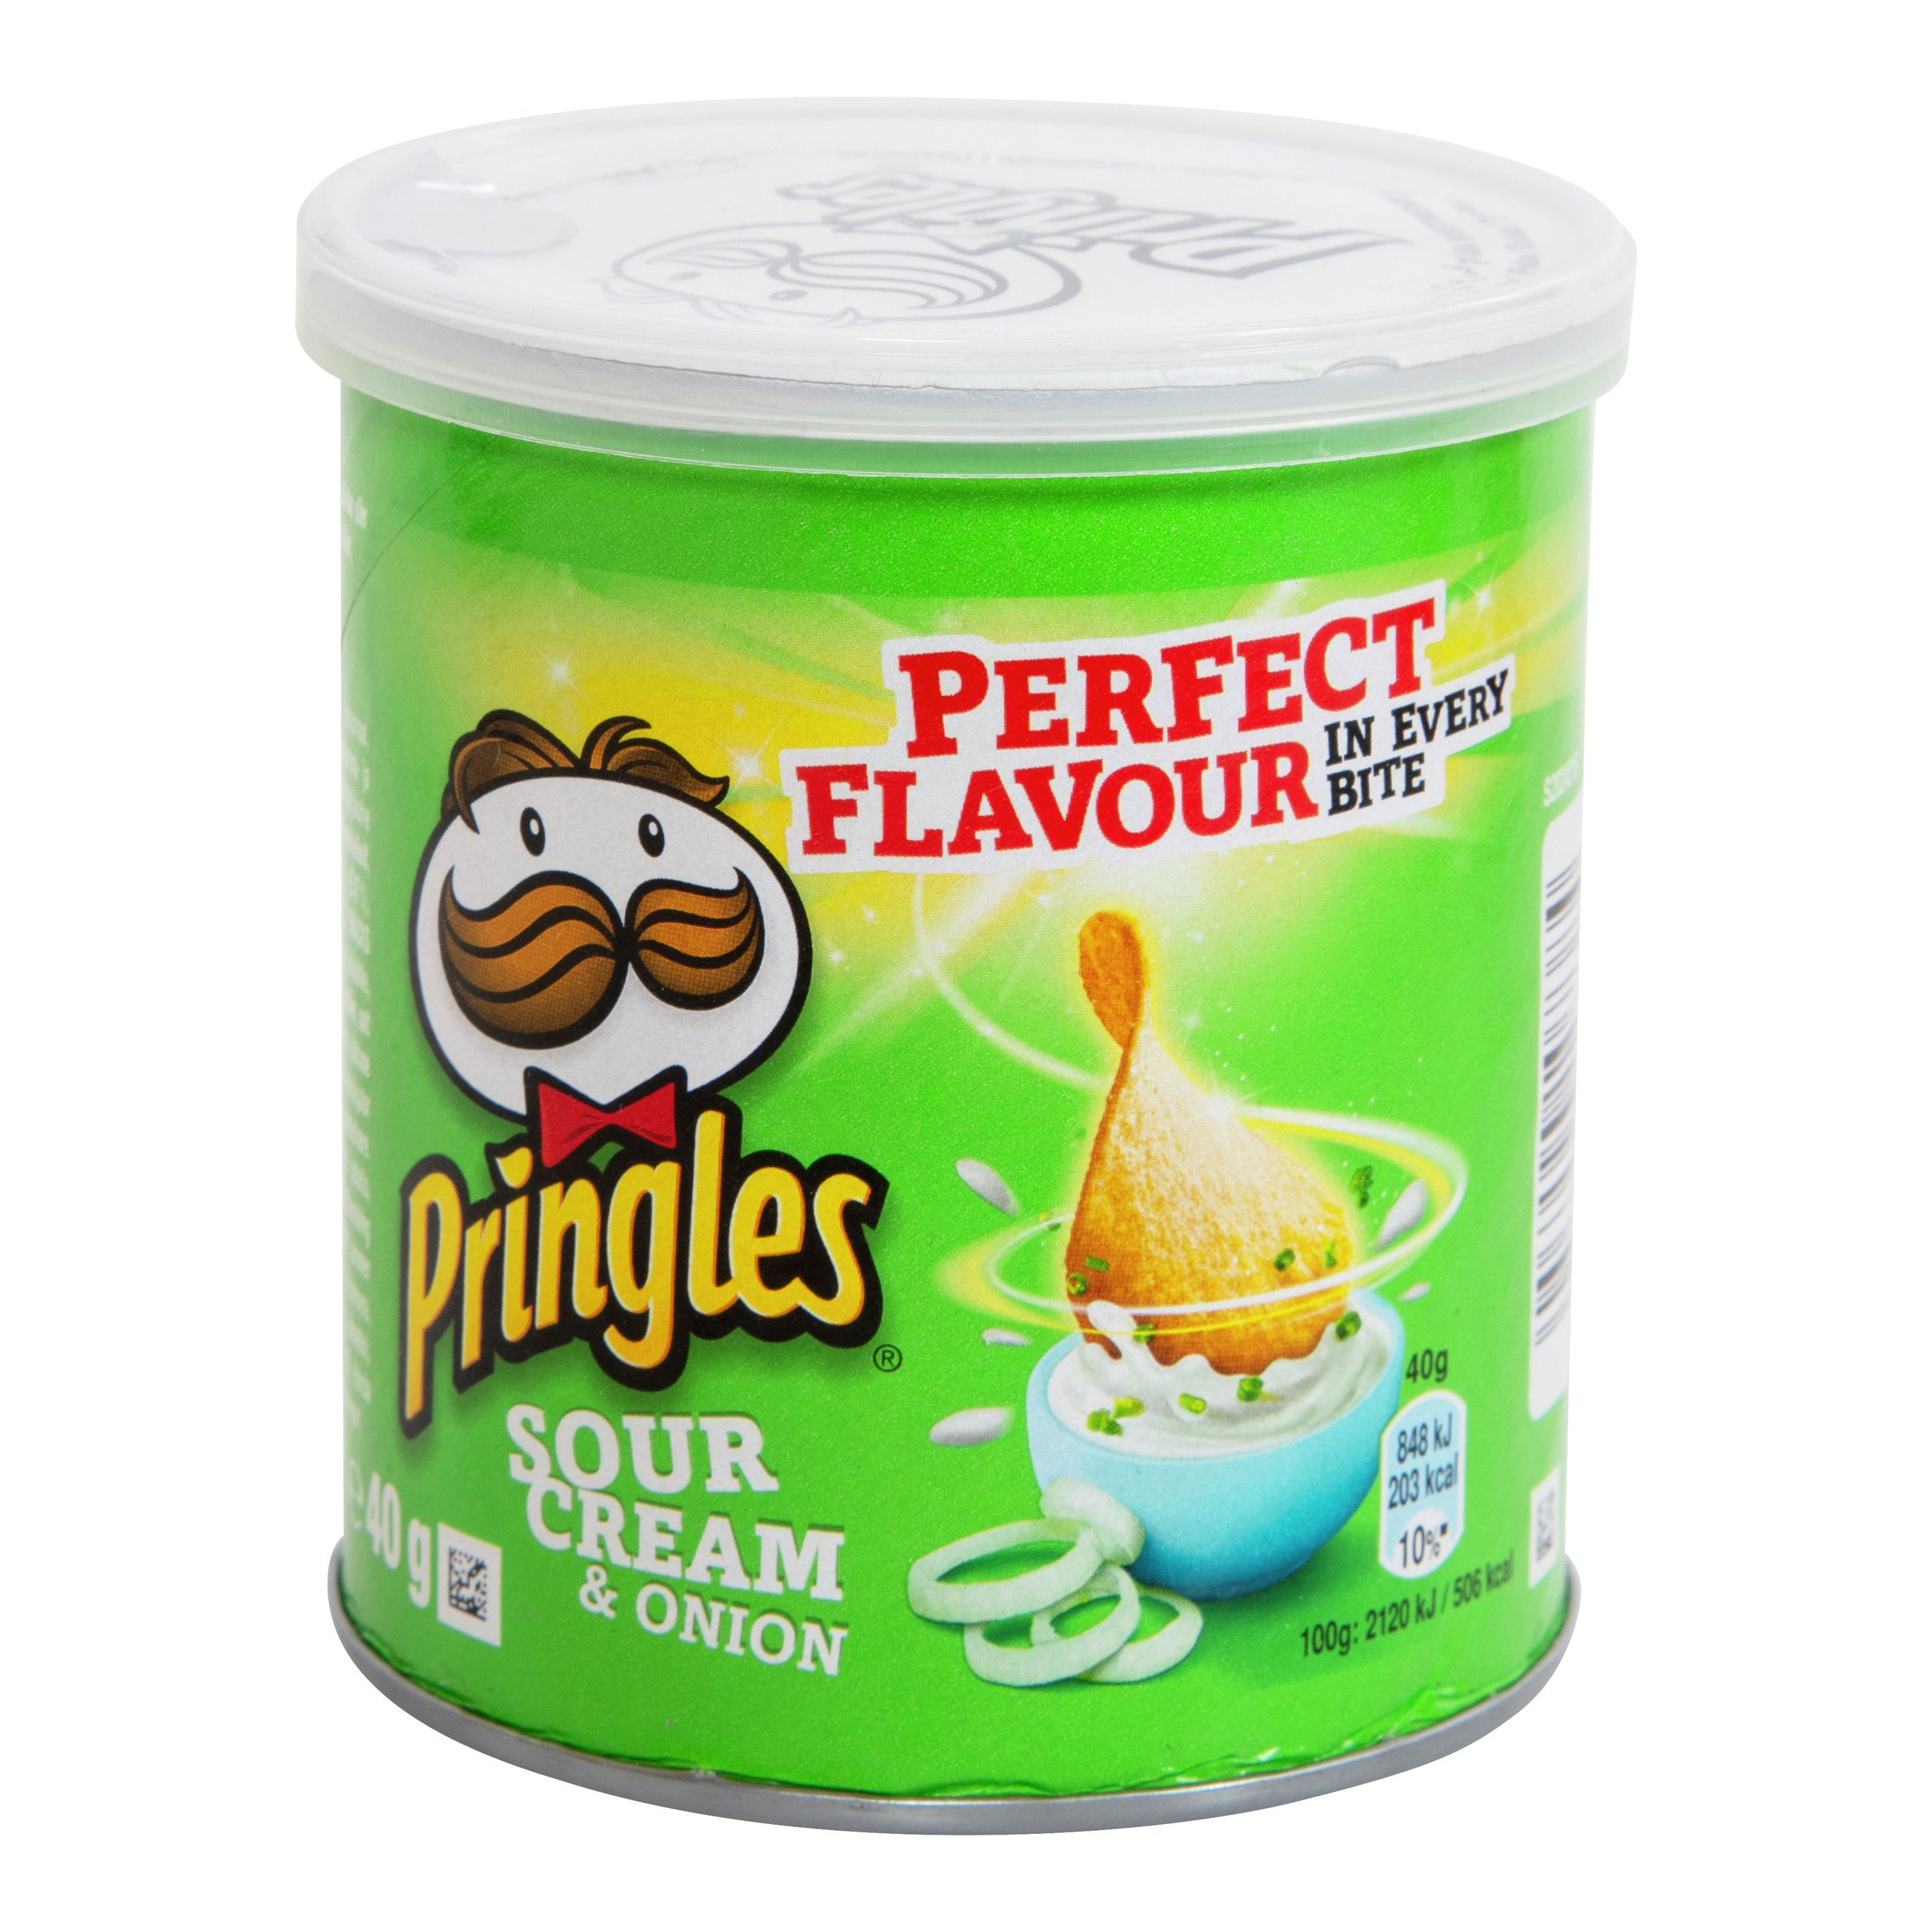 PRINGLES SOURCREAM & ONION 40G-POT038